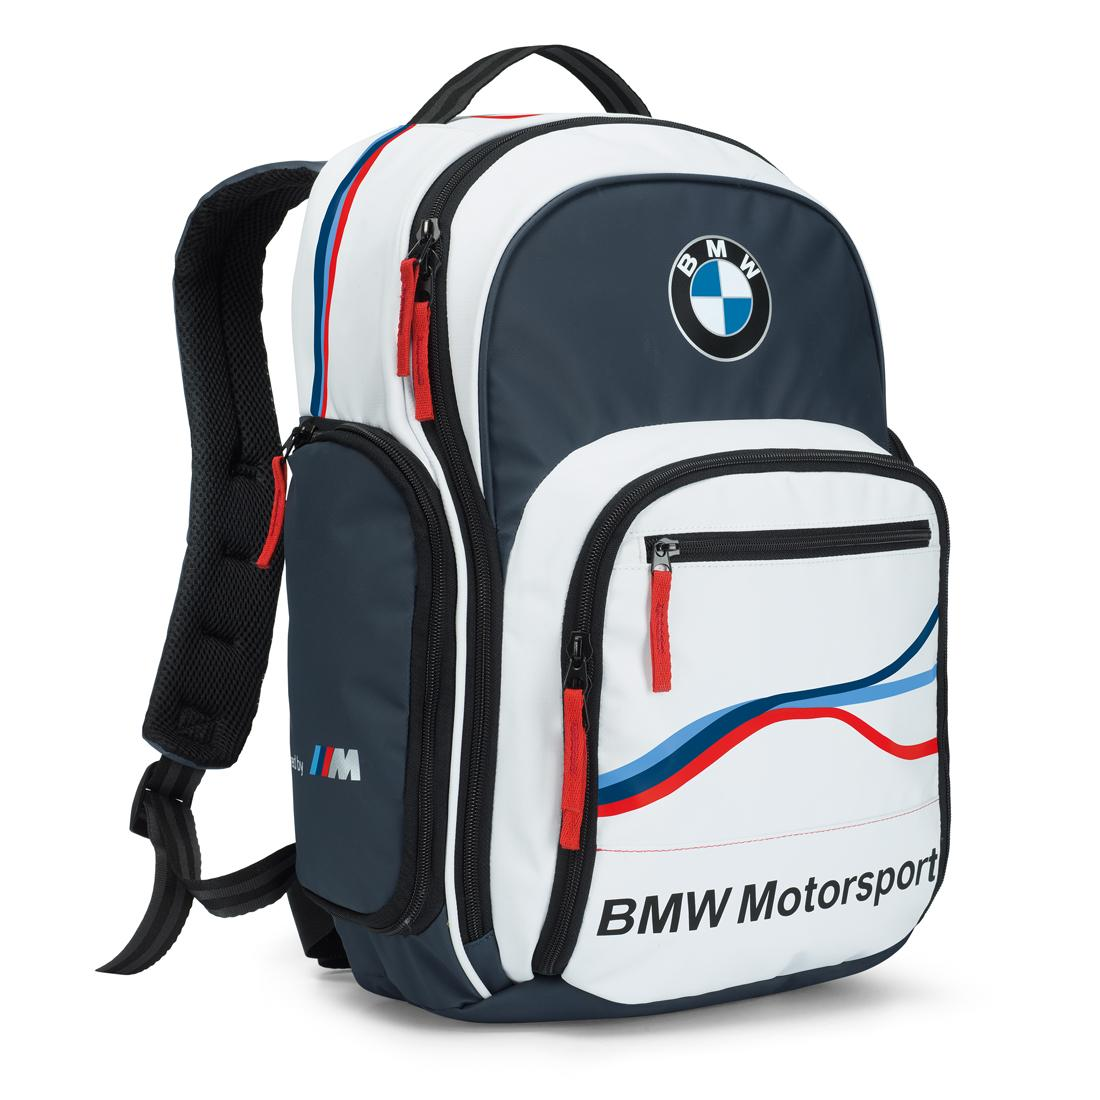 bmw motorsport backpack. Black Bedroom Furniture Sets. Home Design Ideas